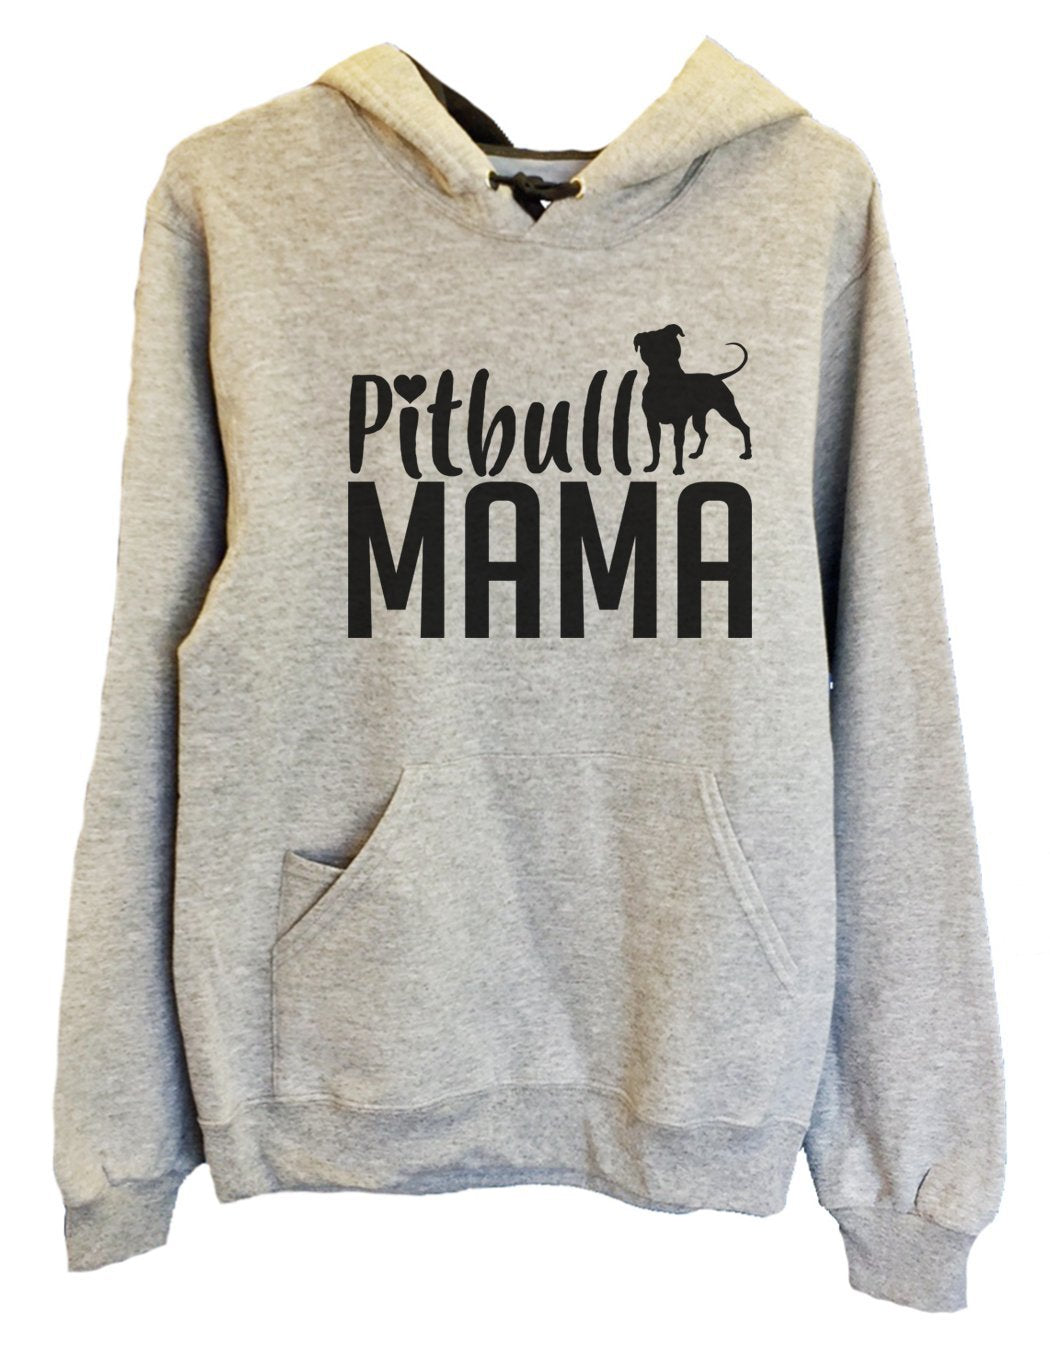 UNISEX HOODIE - Pitbull Mama - FUNNY MENS AND WOMENS HOODED SWEATSHIRTS - 2180 Funny Shirt